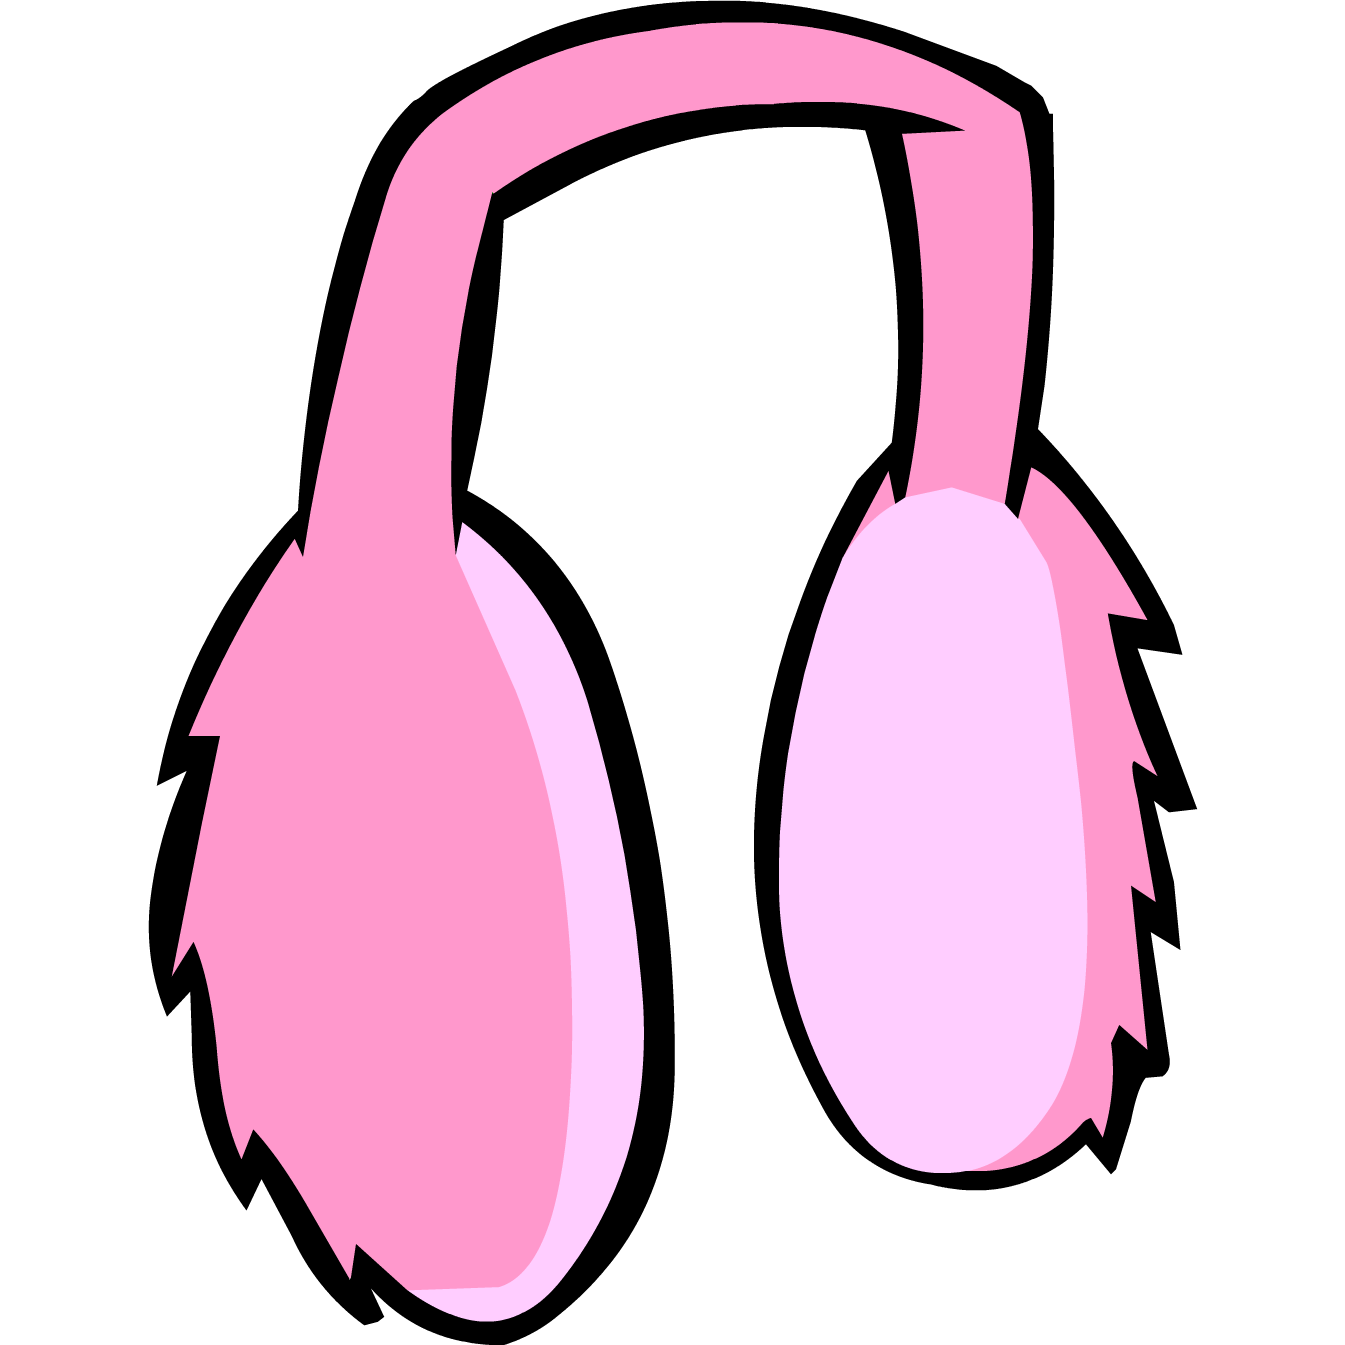 Ear muffs clipart.